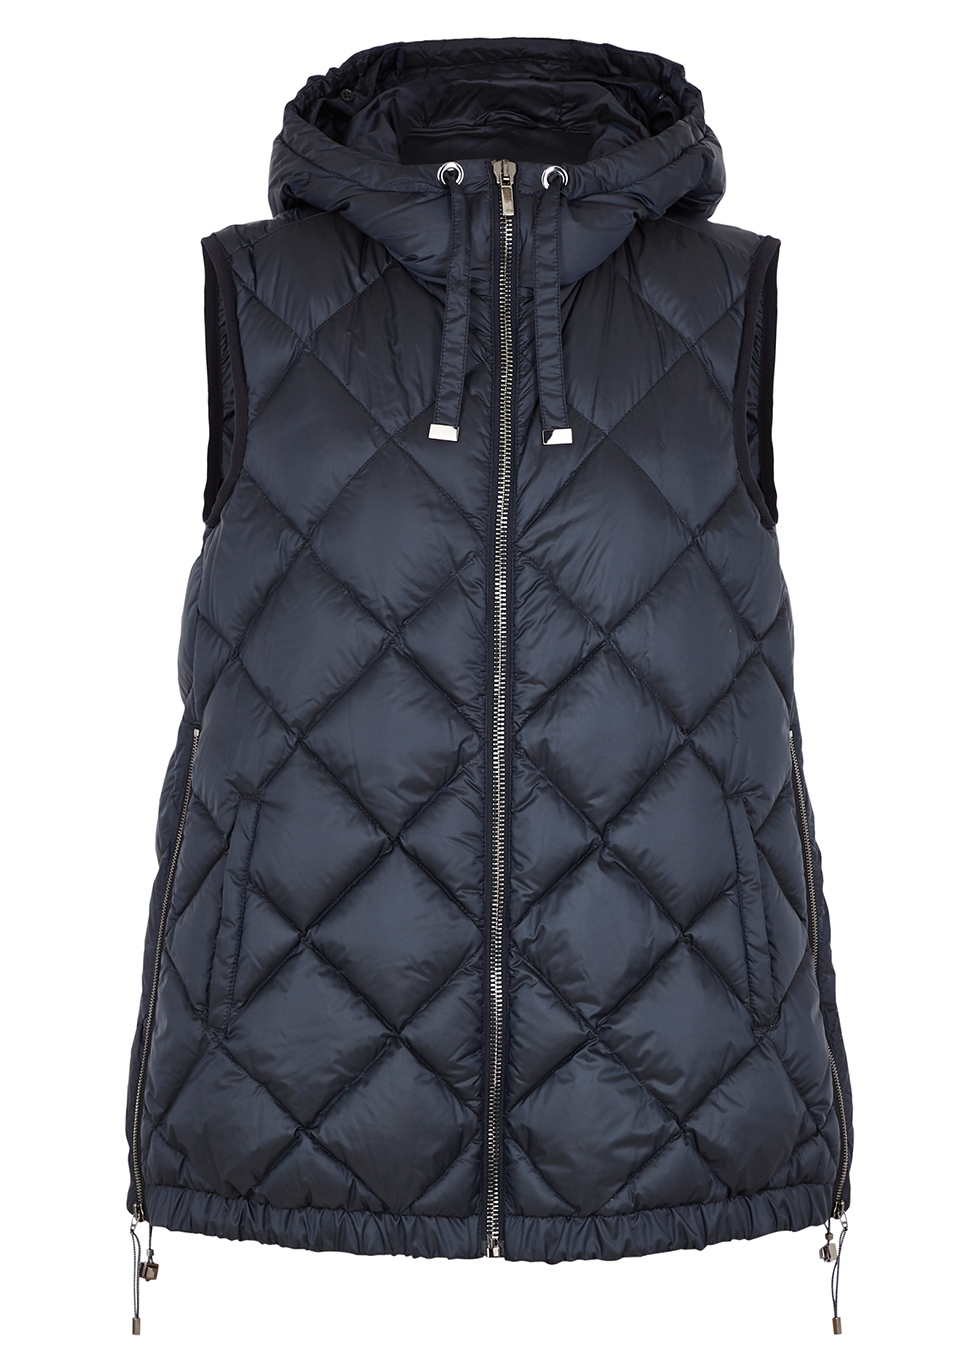 Tregil navy quilted shell gilet